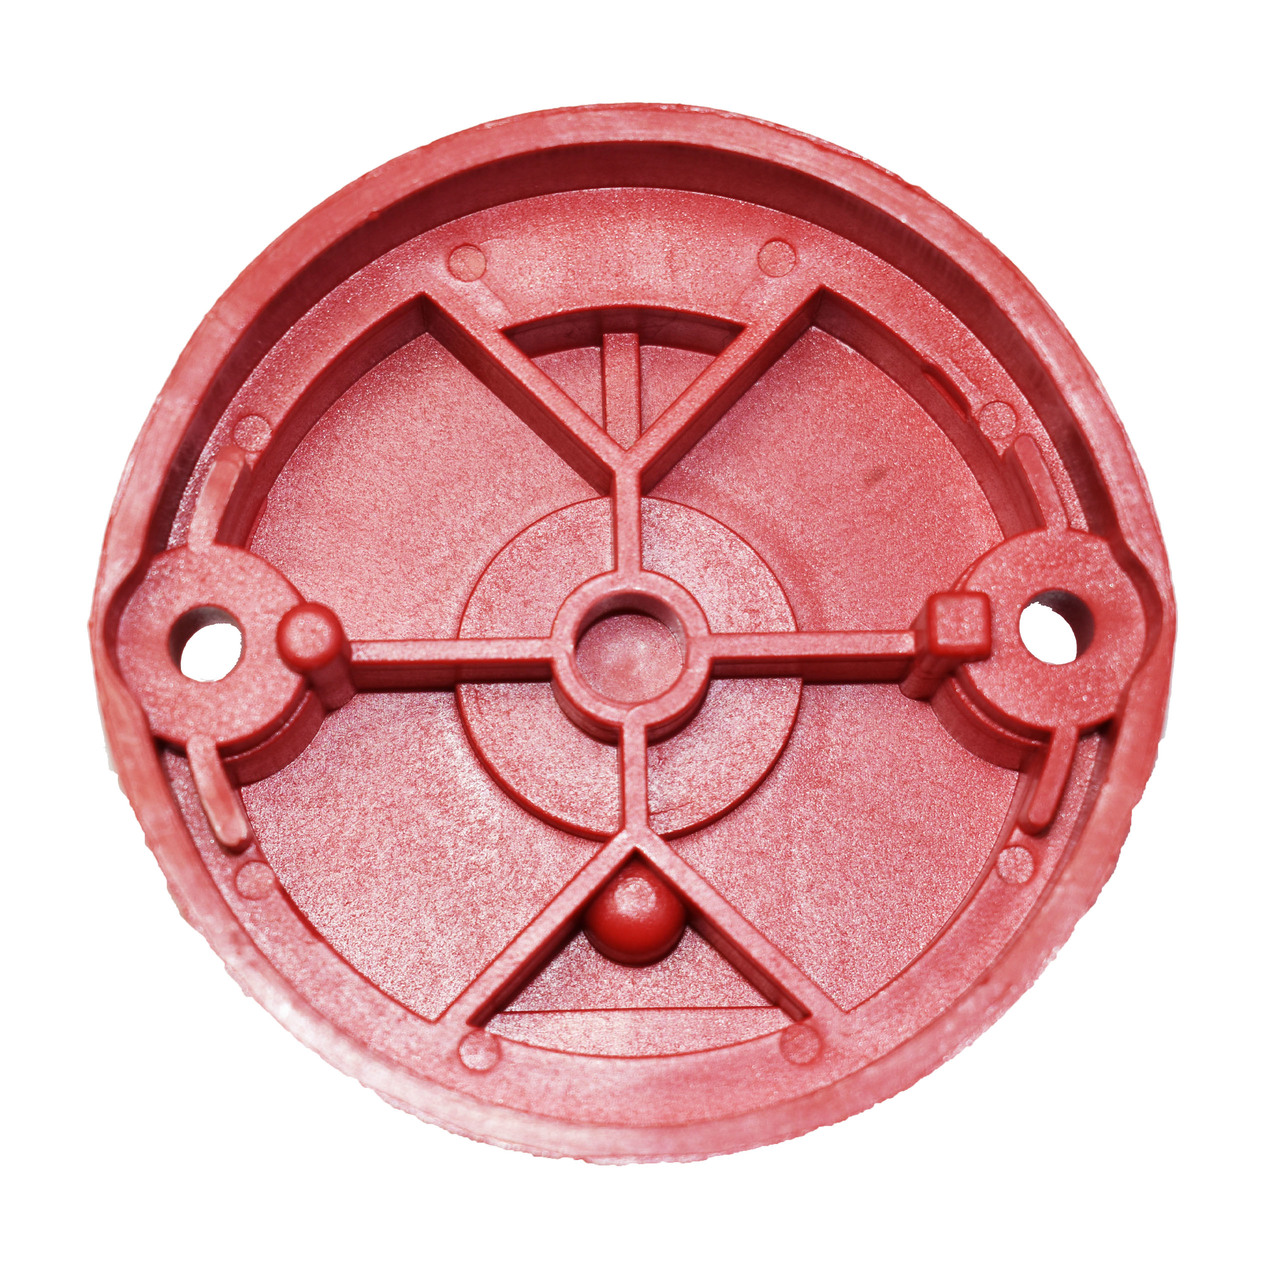 A-Team Performance 8-Cylinder Female Pro Series Distributor Cap & Rotor Kit (Red)